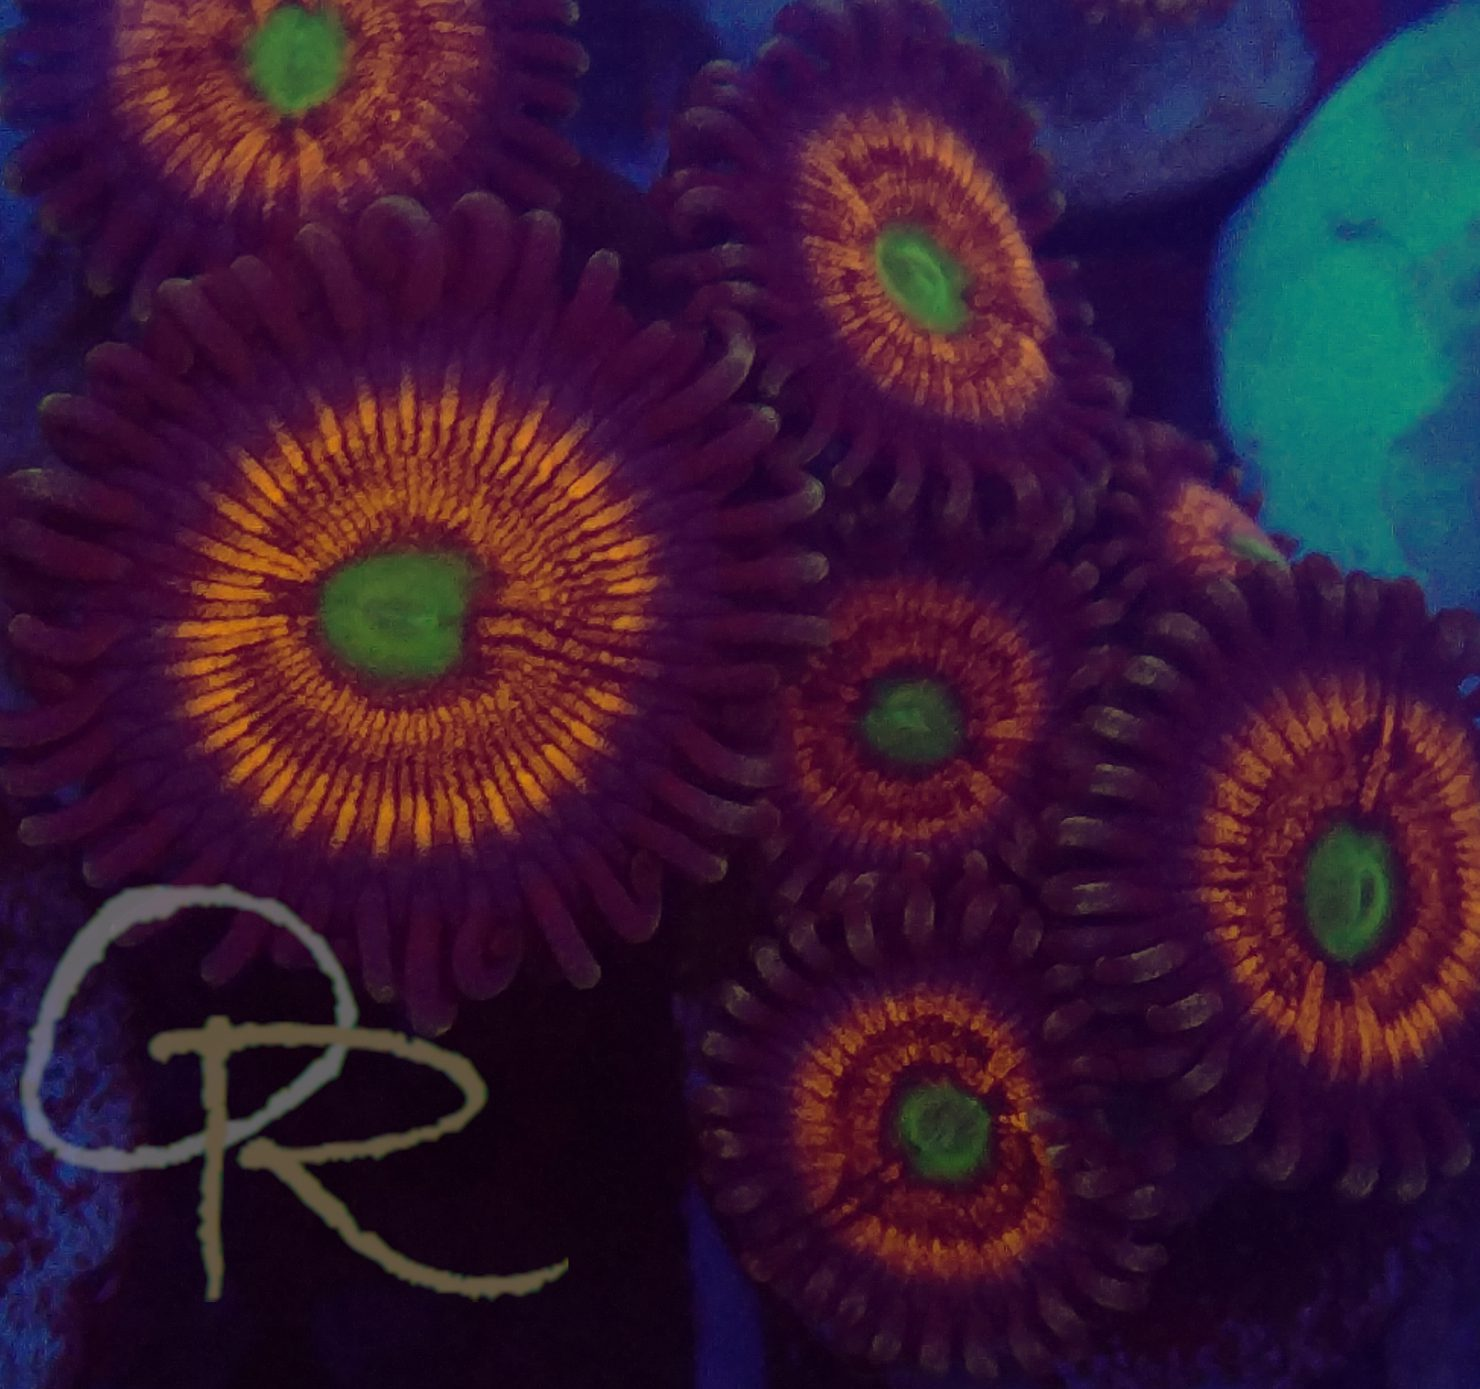 Zoanthids – Everlasting Gobstoppers